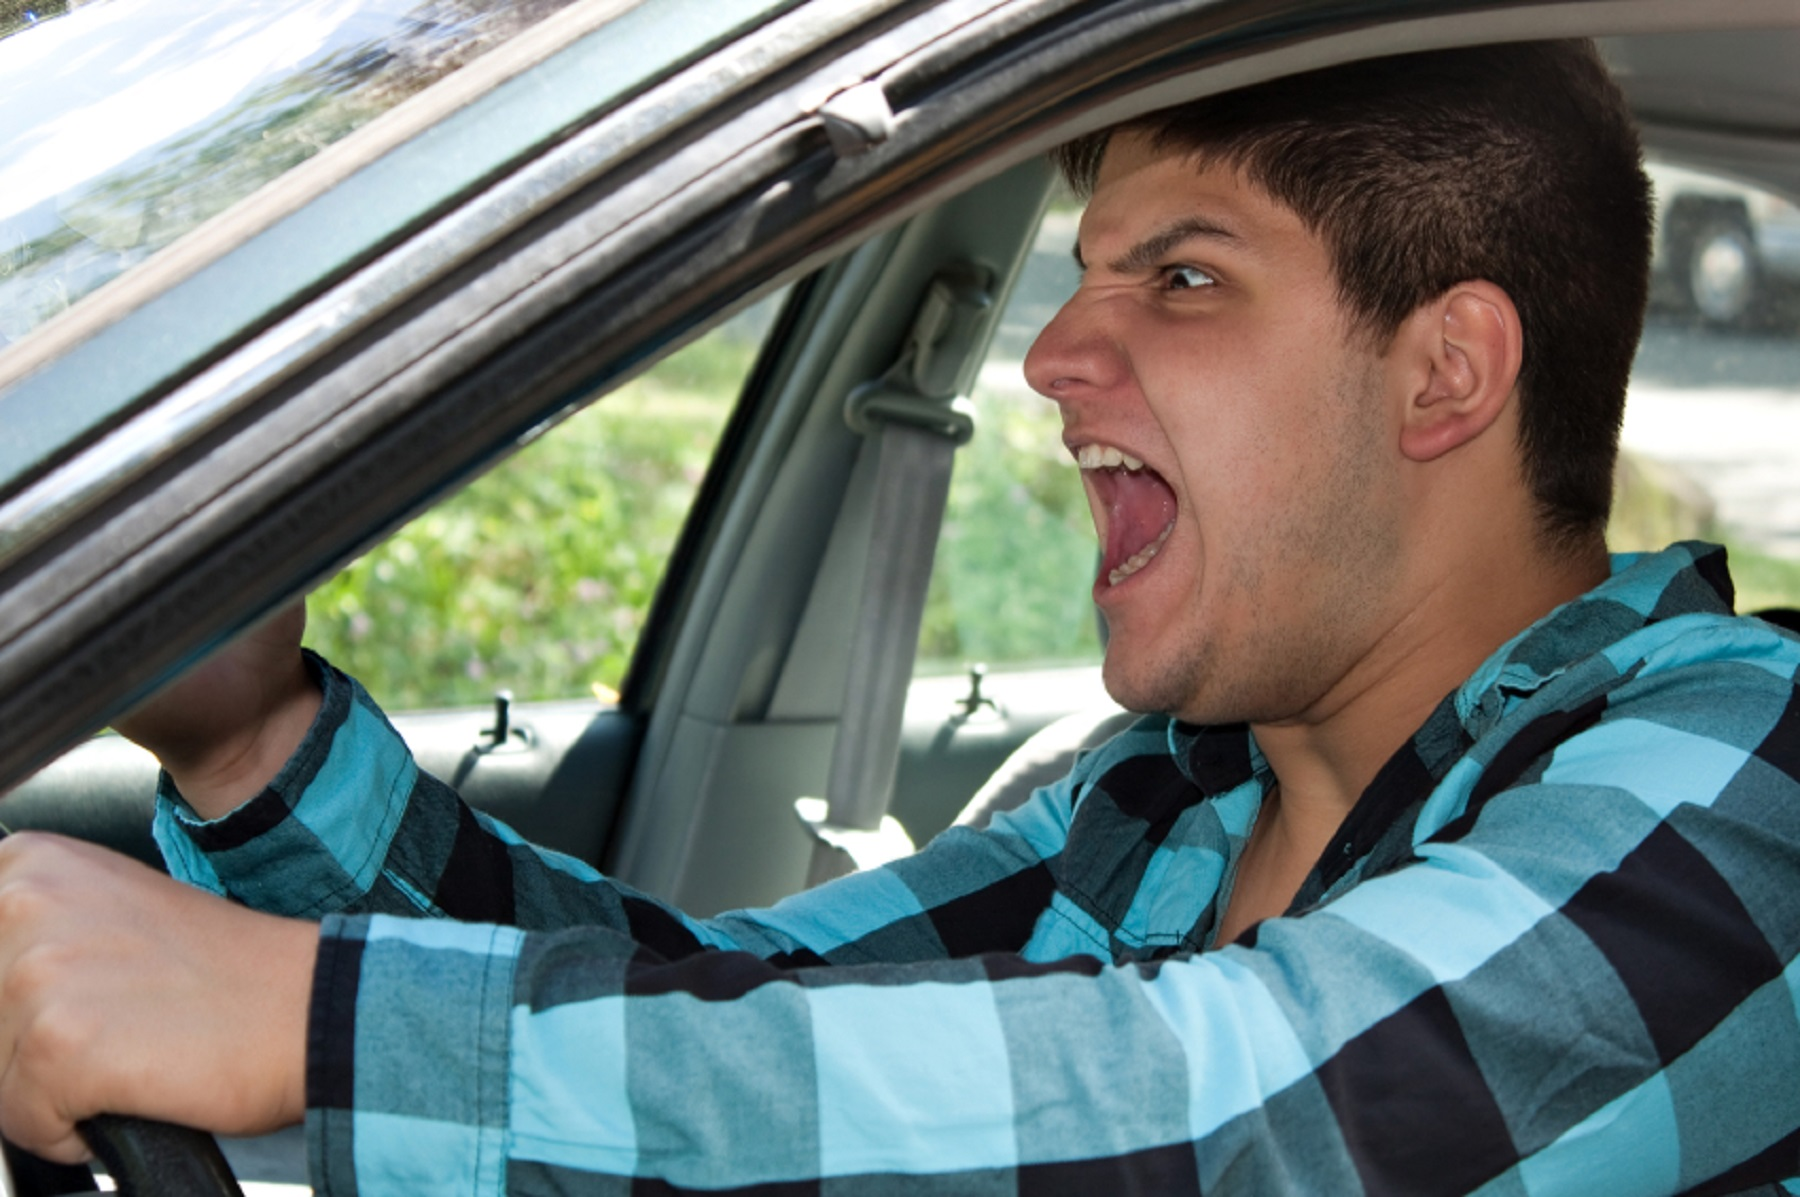 Forum on this topic: How to Stay Calm During Road Rage, how-to-stay-calm-during-road-rage/